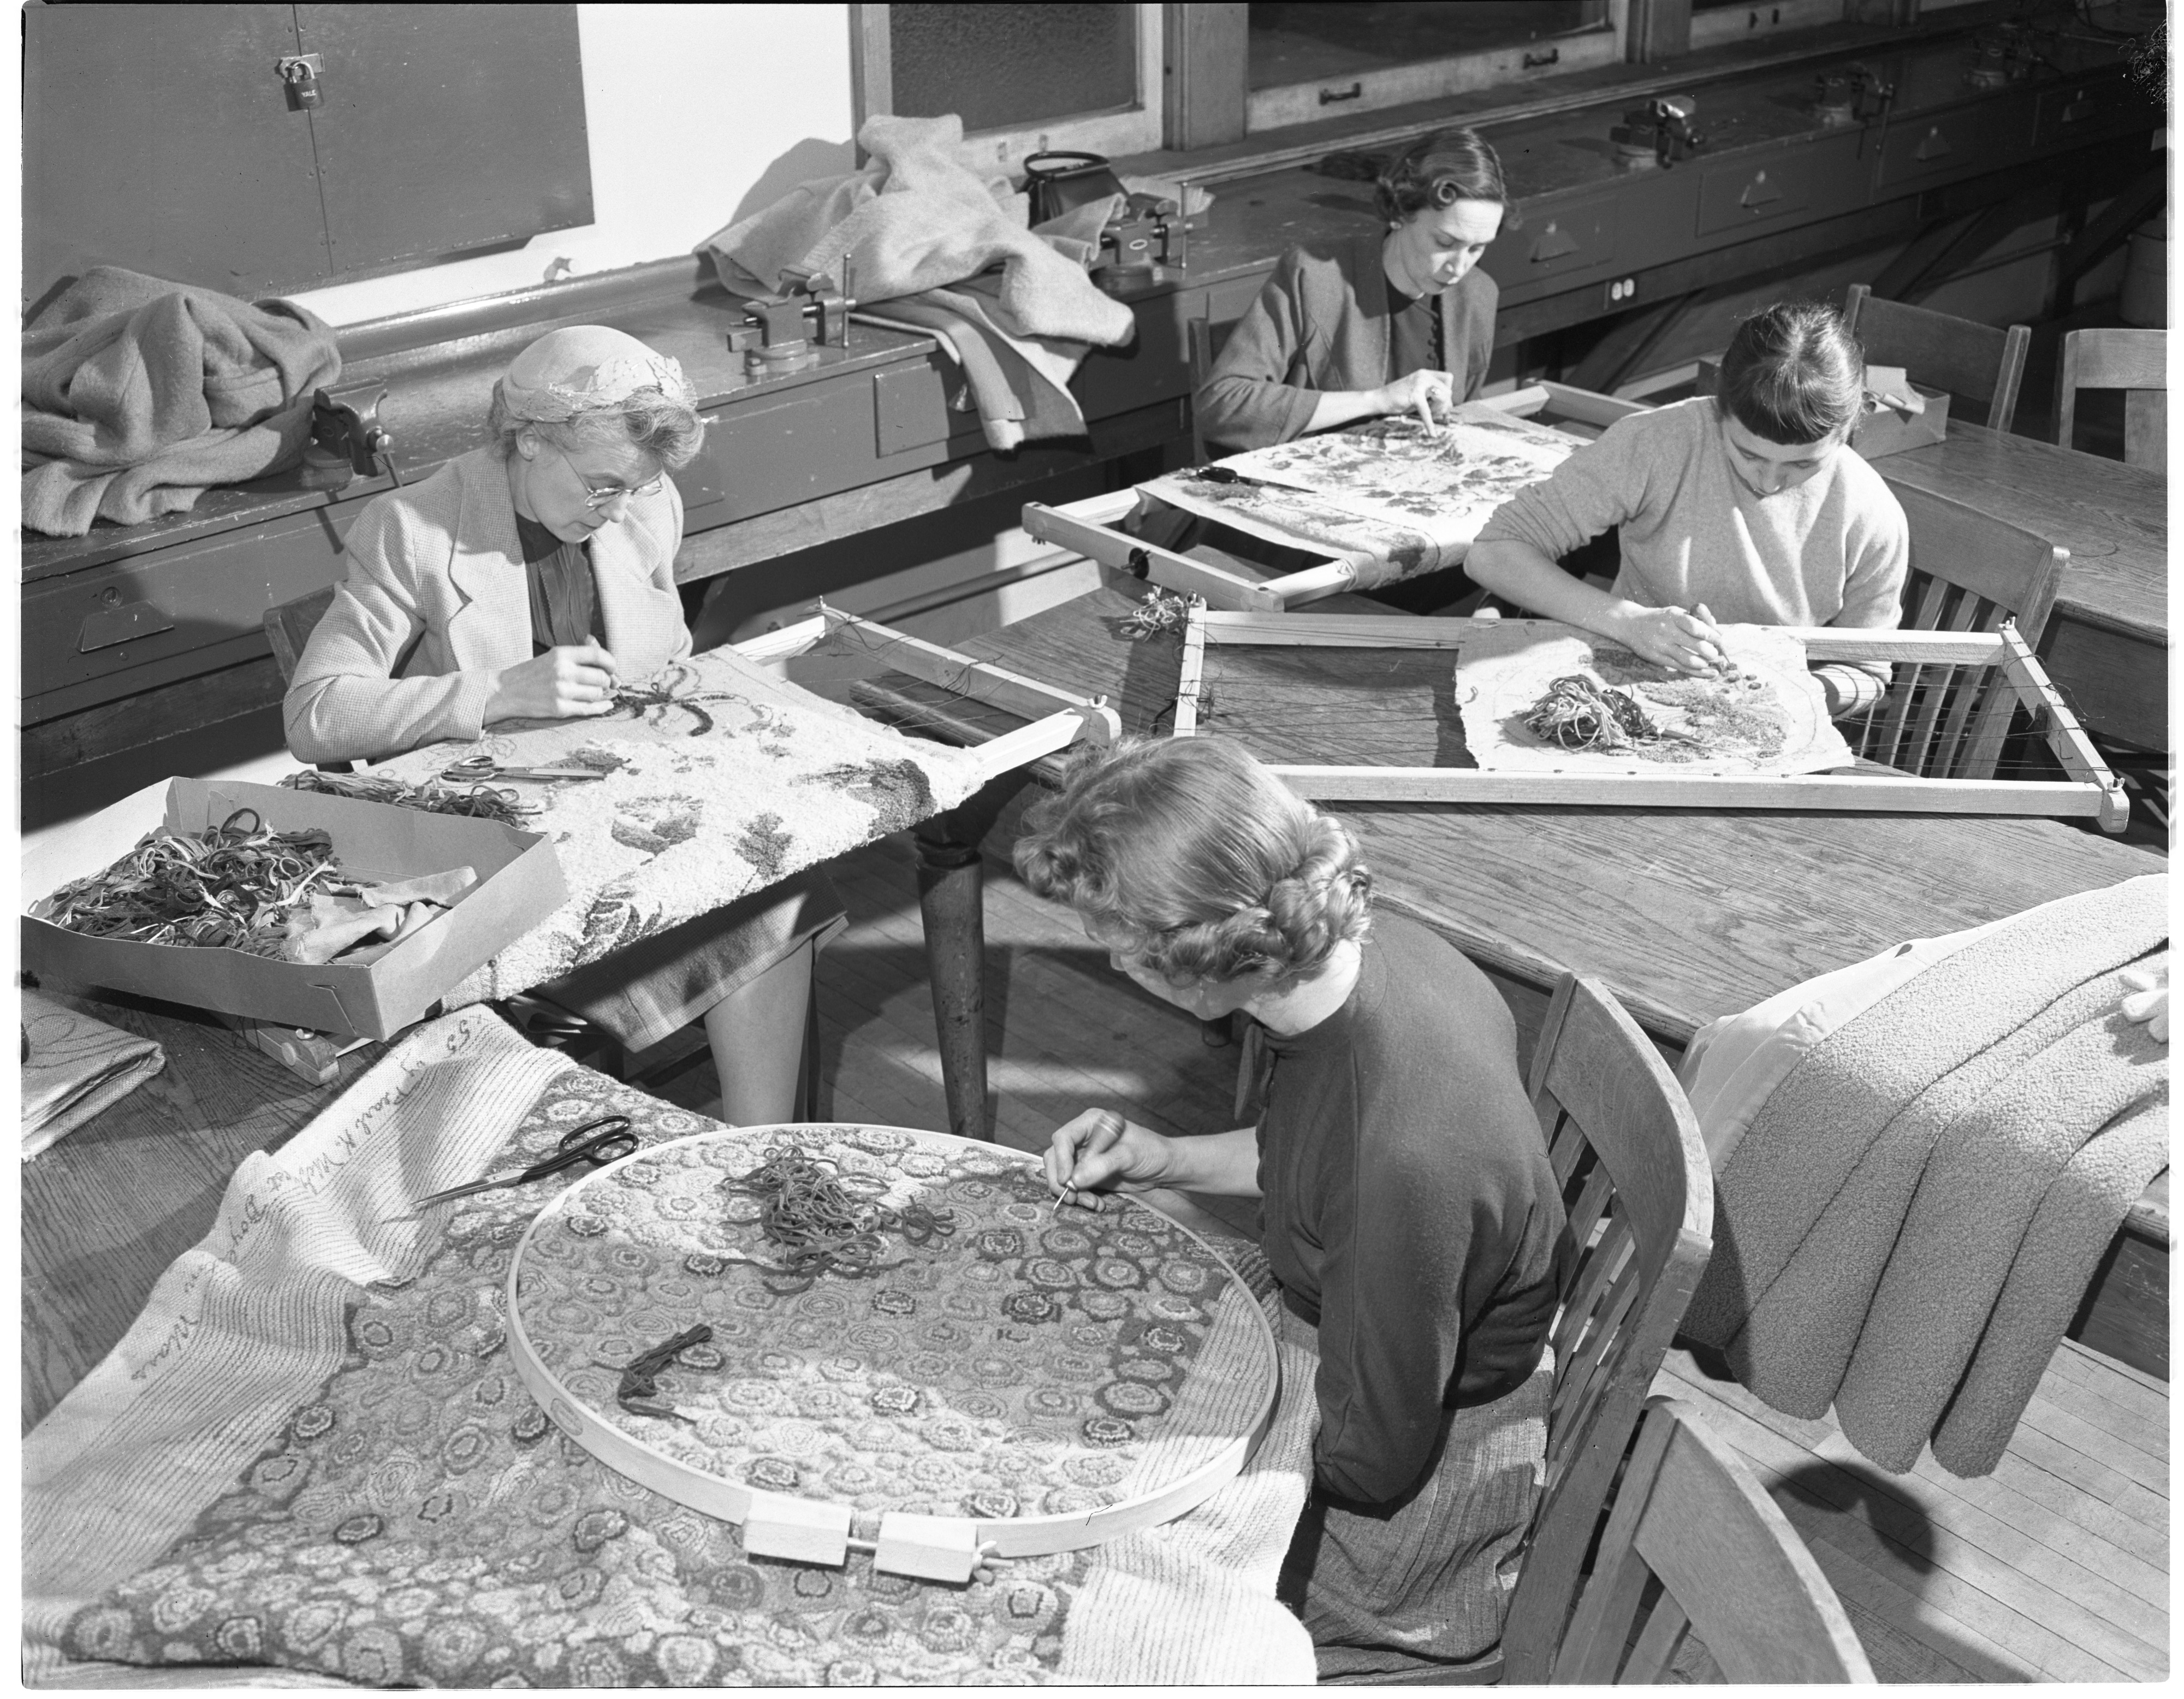 Ann Arbor Public Evening School - Rug Hooking Class, February 1955 image